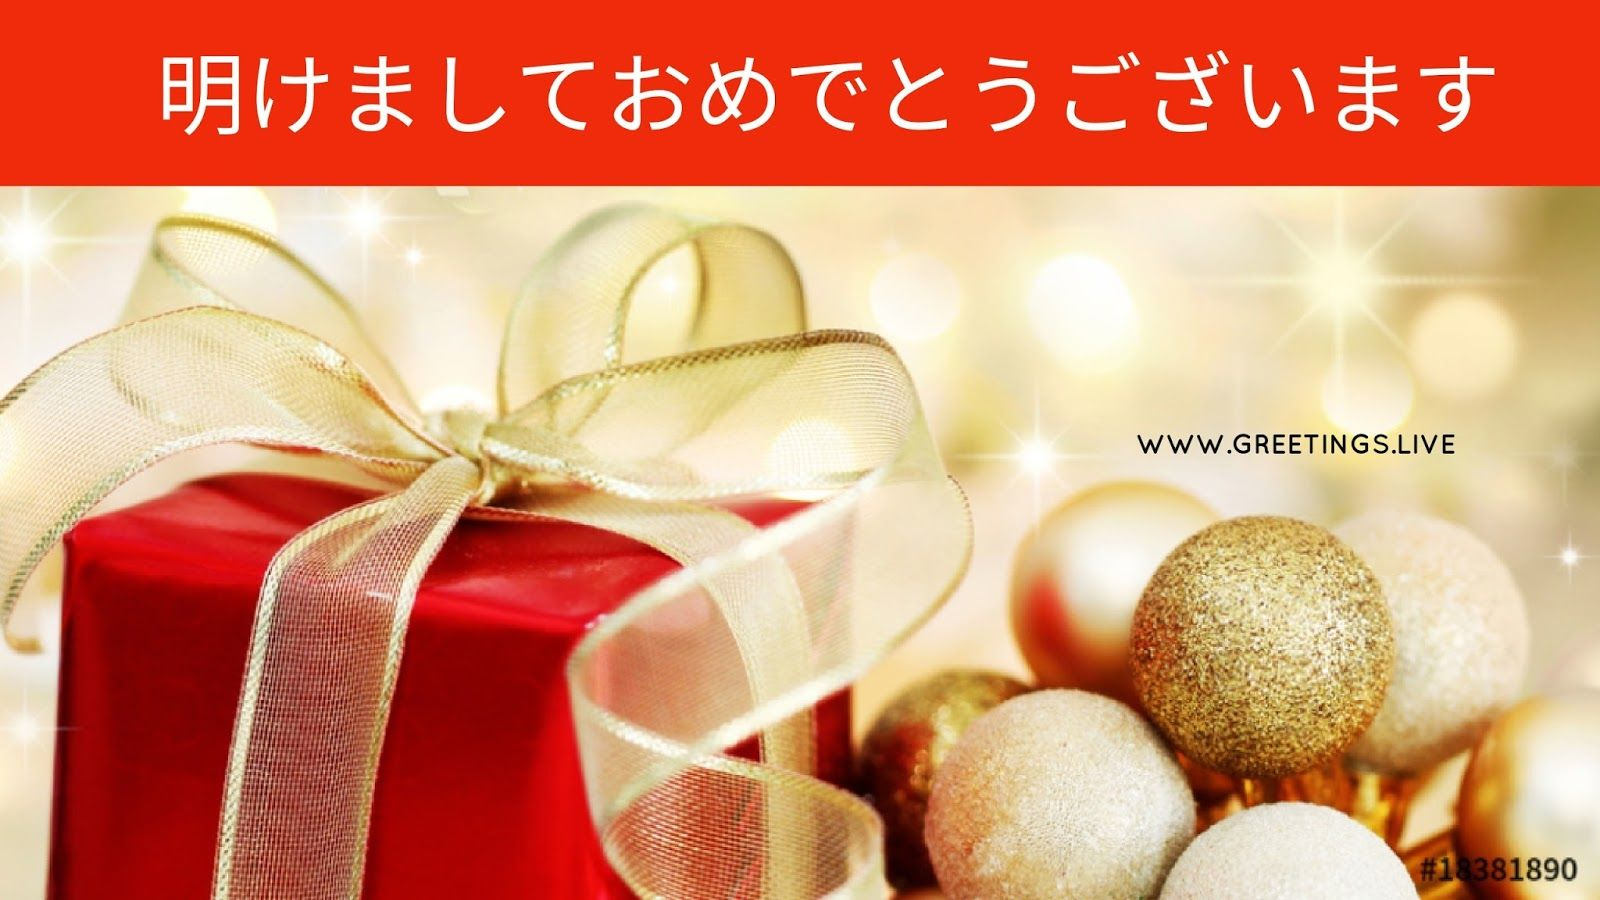 Happy New Year In Japanese Language Greetings Live Pinterest